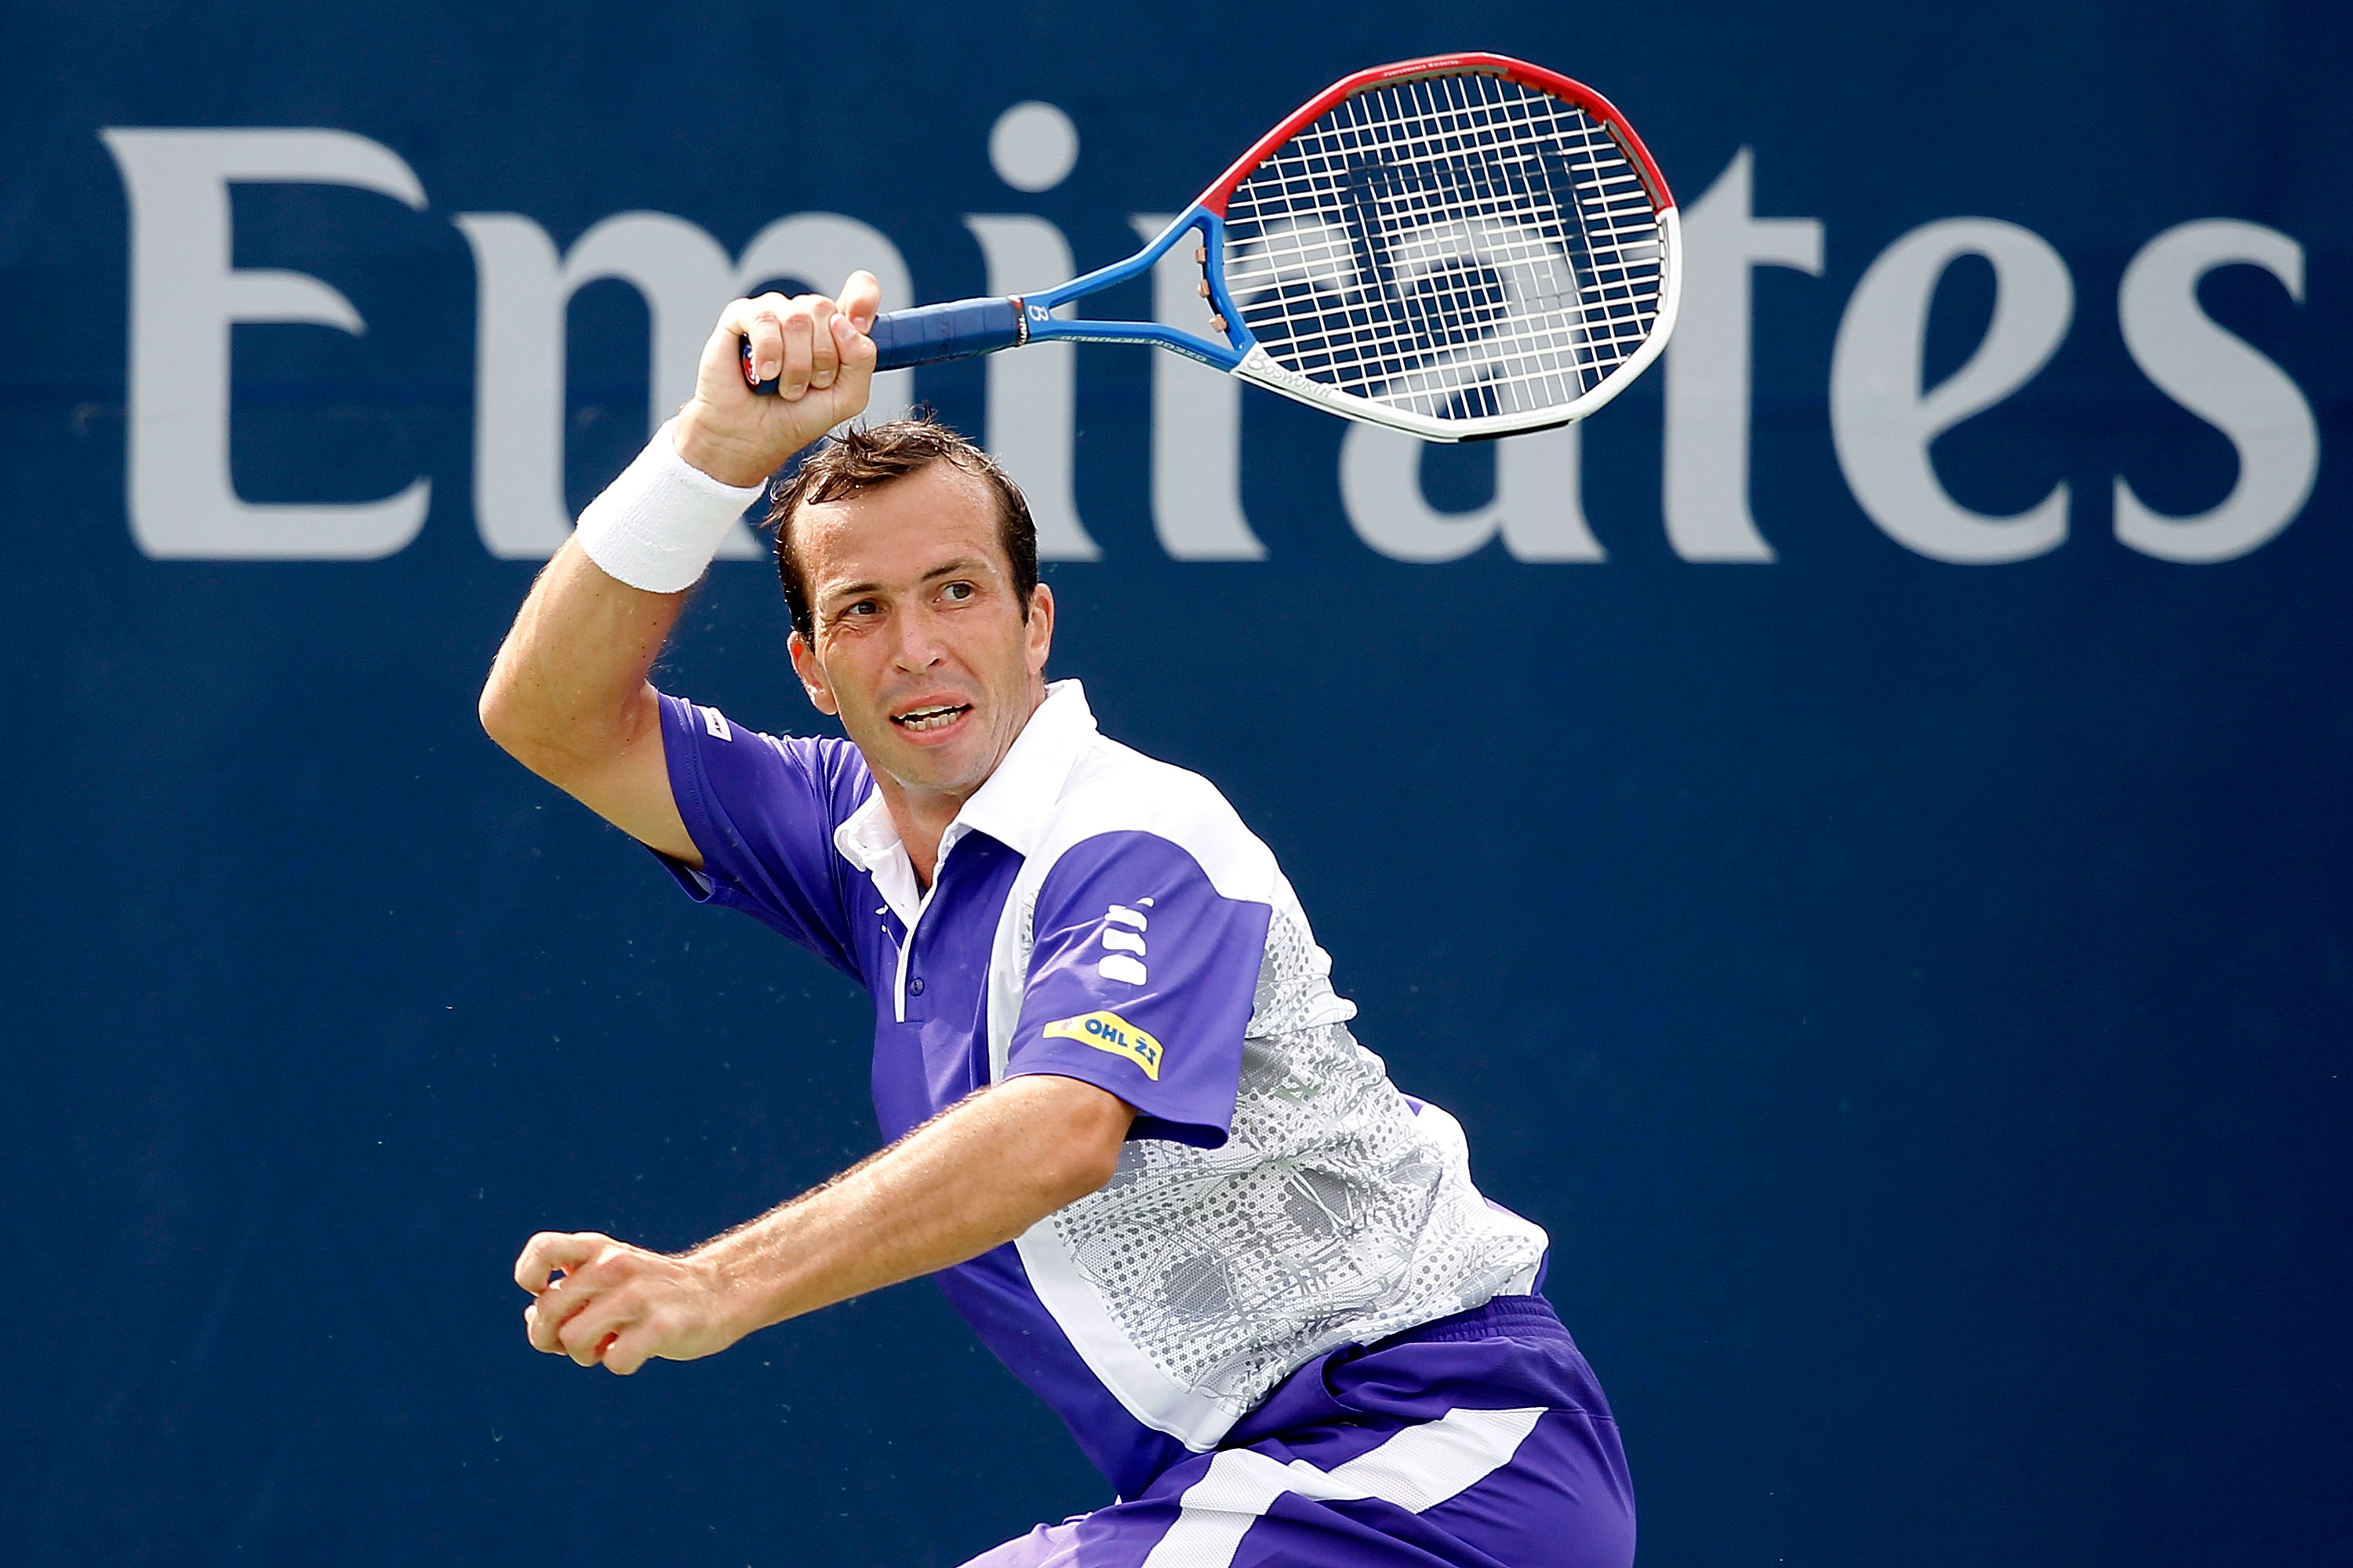 TORONTO, ON - AUGUST 10: Radek Stepanek of the Czech Republic returns a shot to Fabio Fognini of Italy during the Rogers Cup at the Rexall Centre on August 10, 2010 in Toronto, Canada.  (Photo by Matthew Stockman/Getty Images)